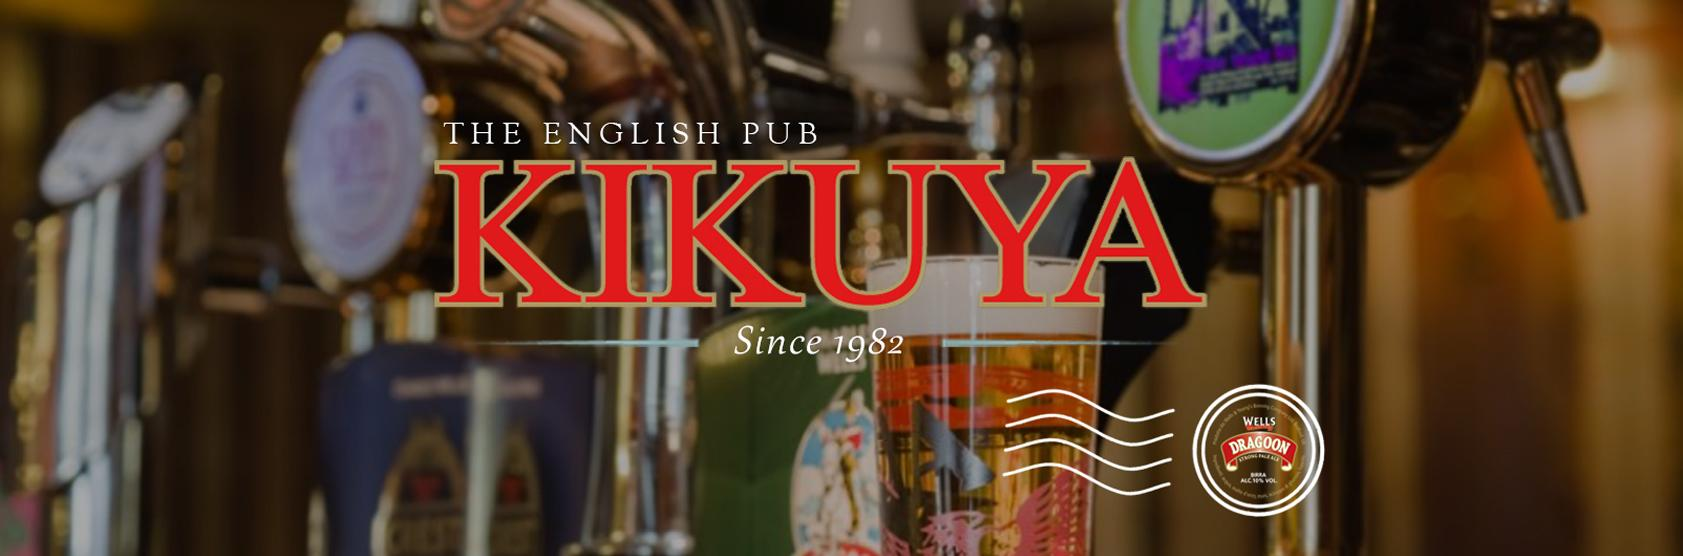 KIKUYA ENGLISH PUB - LOGO